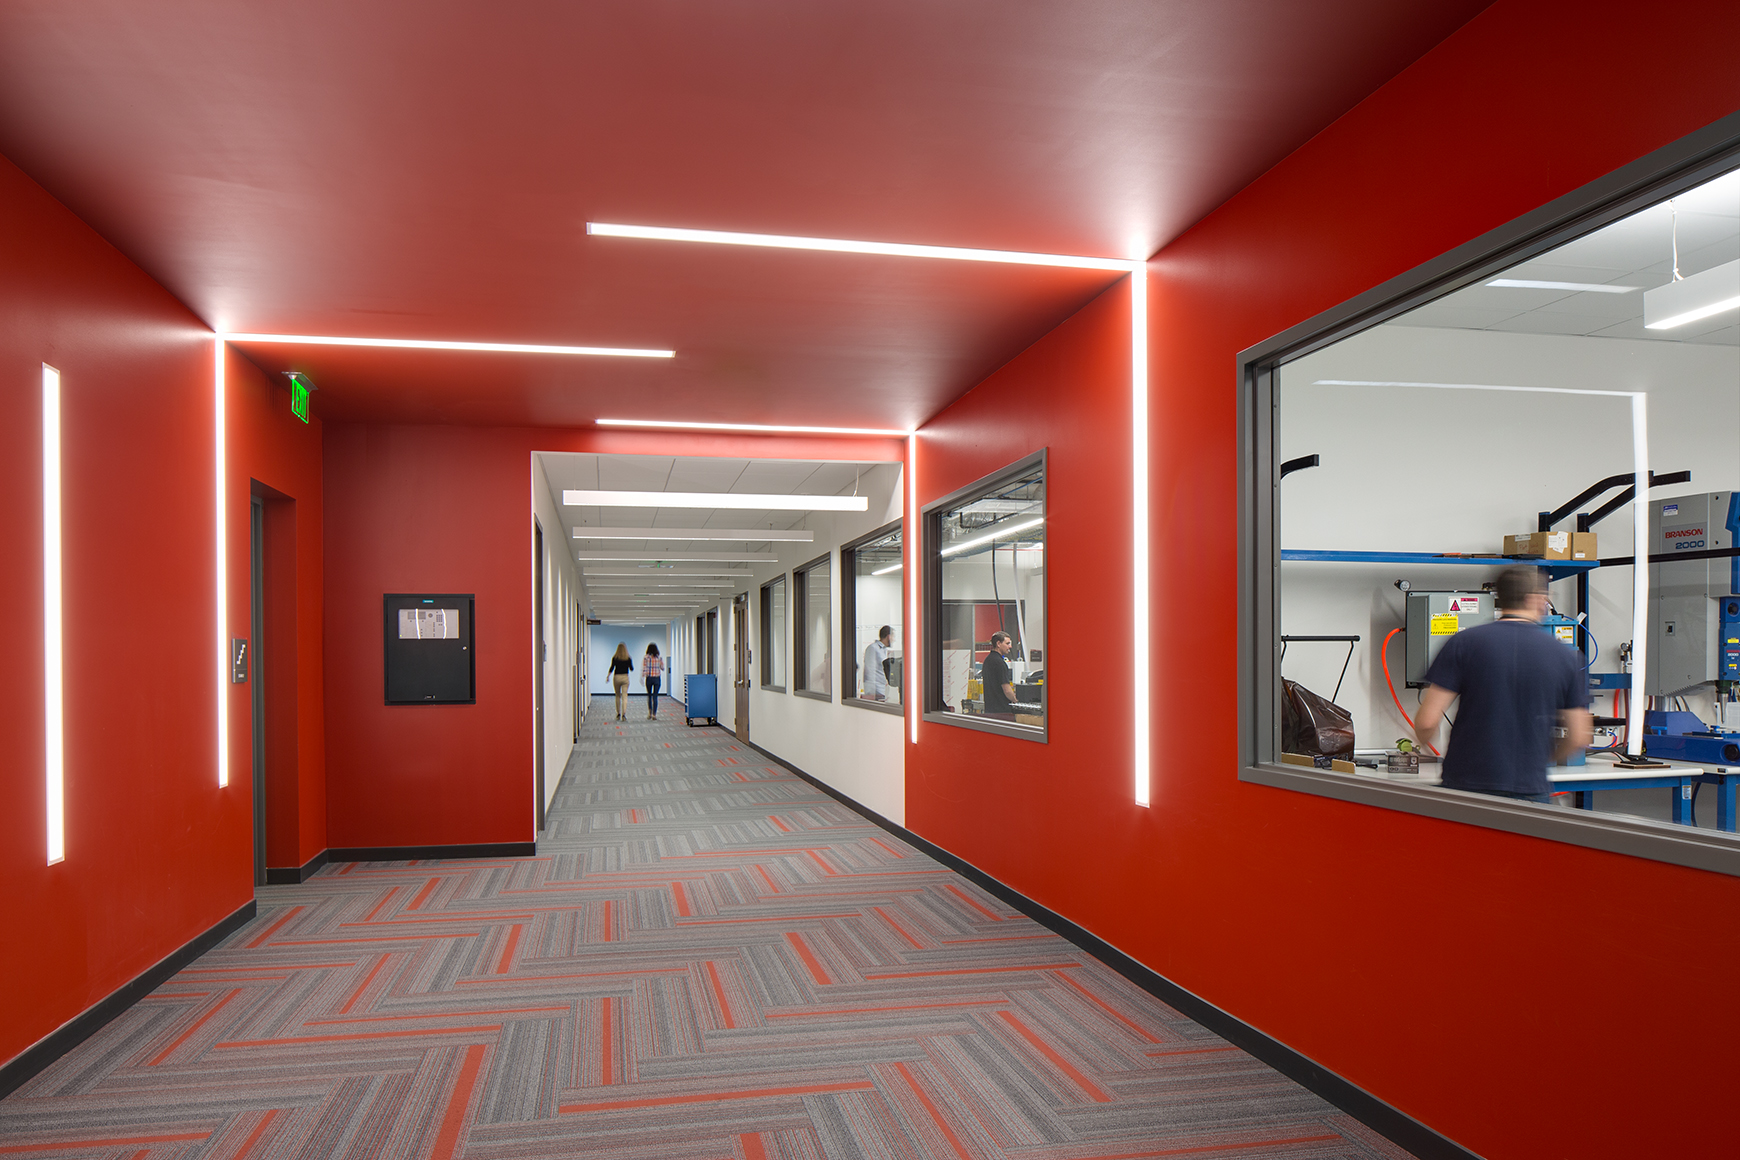 Interior photograph of long red hallway at Bio Fire, a bio tech company in Salt Lake City, Utah, with horizontal and vertical strip lighting on the ceilings and walls. The hall also has windows alloing for transparency into the lab spaces.